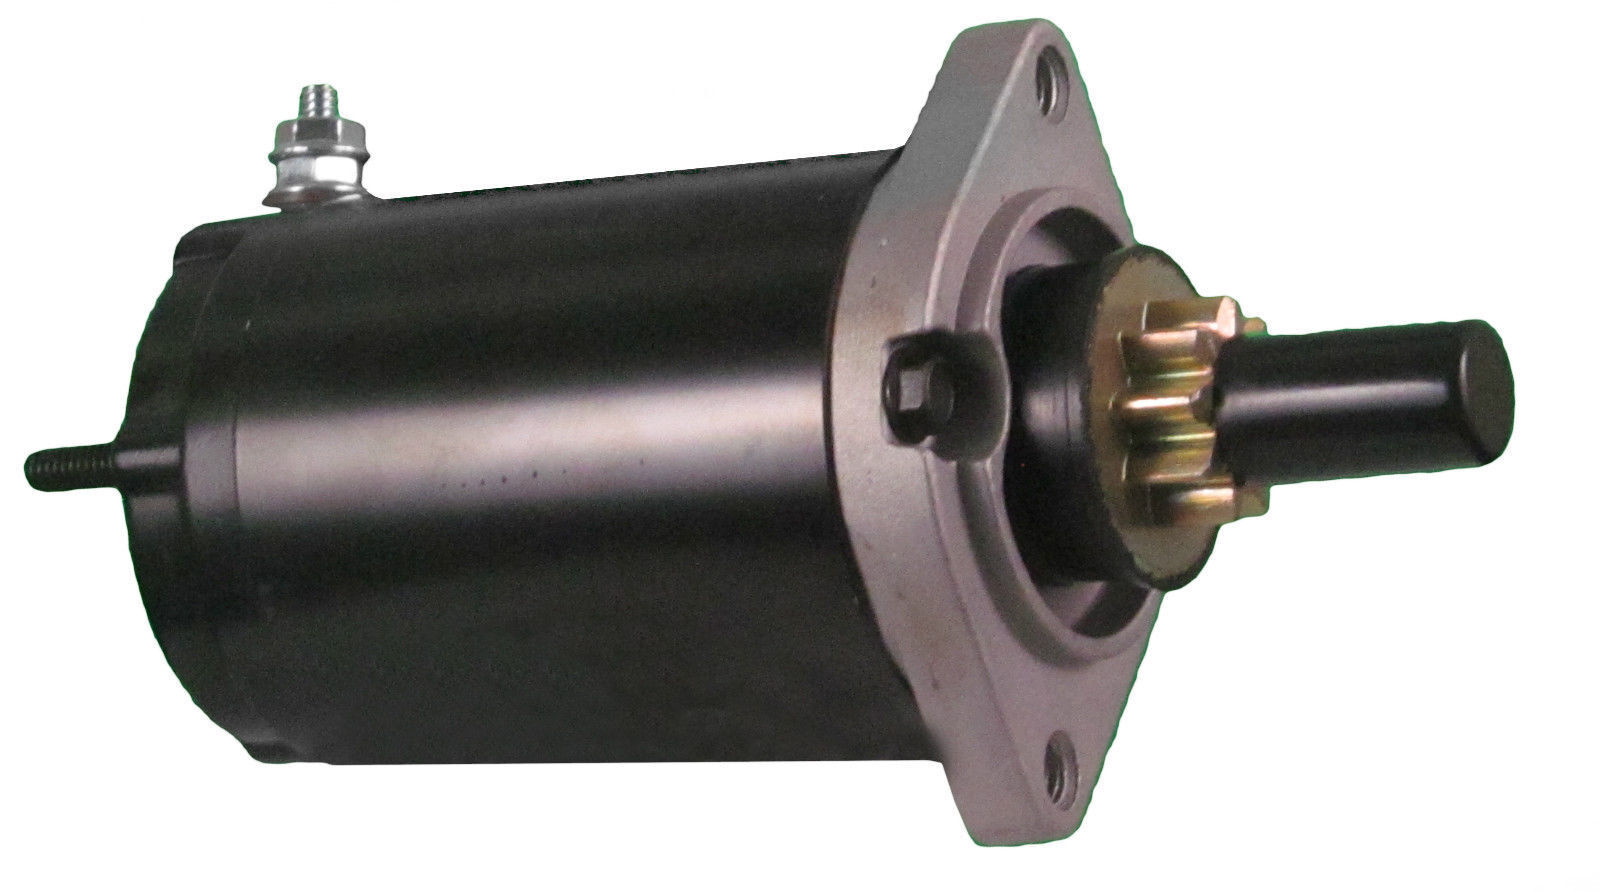 New Starter For Polaris Snowmobile Replaces OEM 2410748 4170006